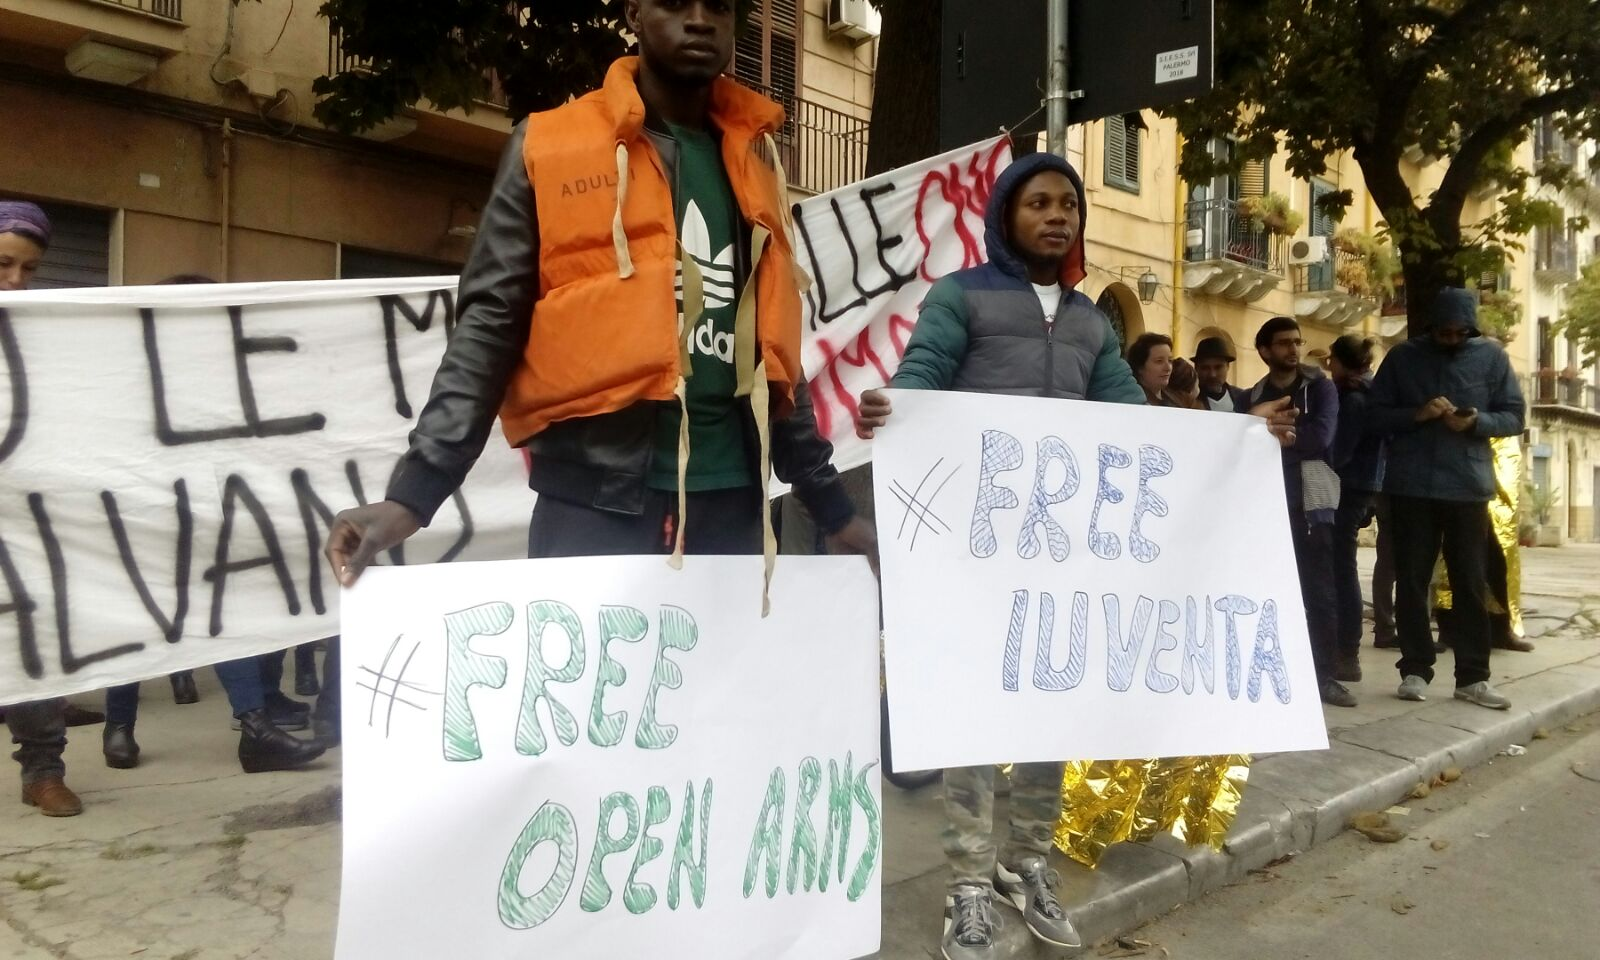 +++Update Salvini's Italy+++: Pro Activa Open Arms criminalized again